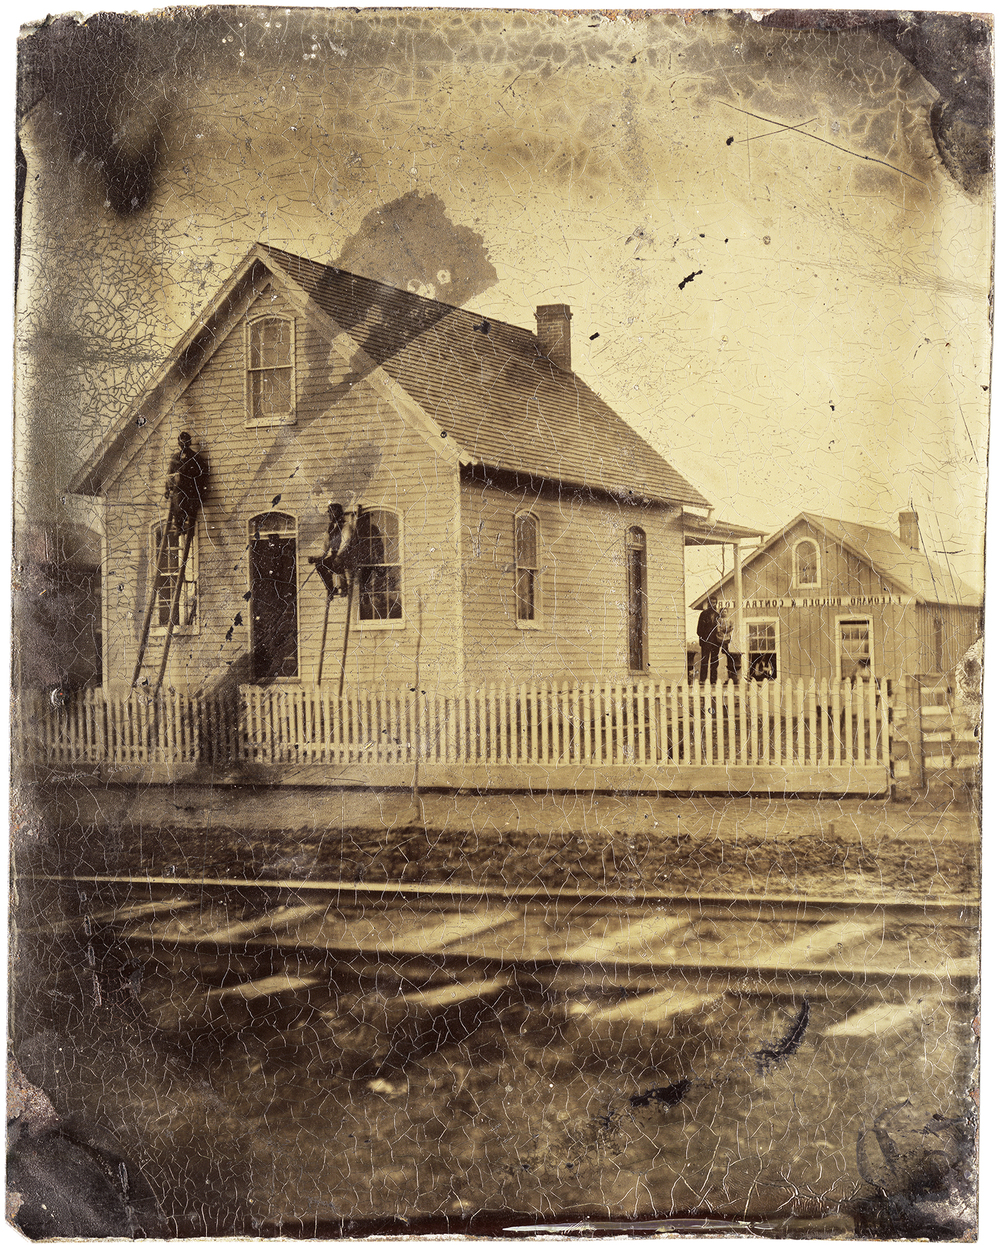 Railroad House, 2013 - LR12246